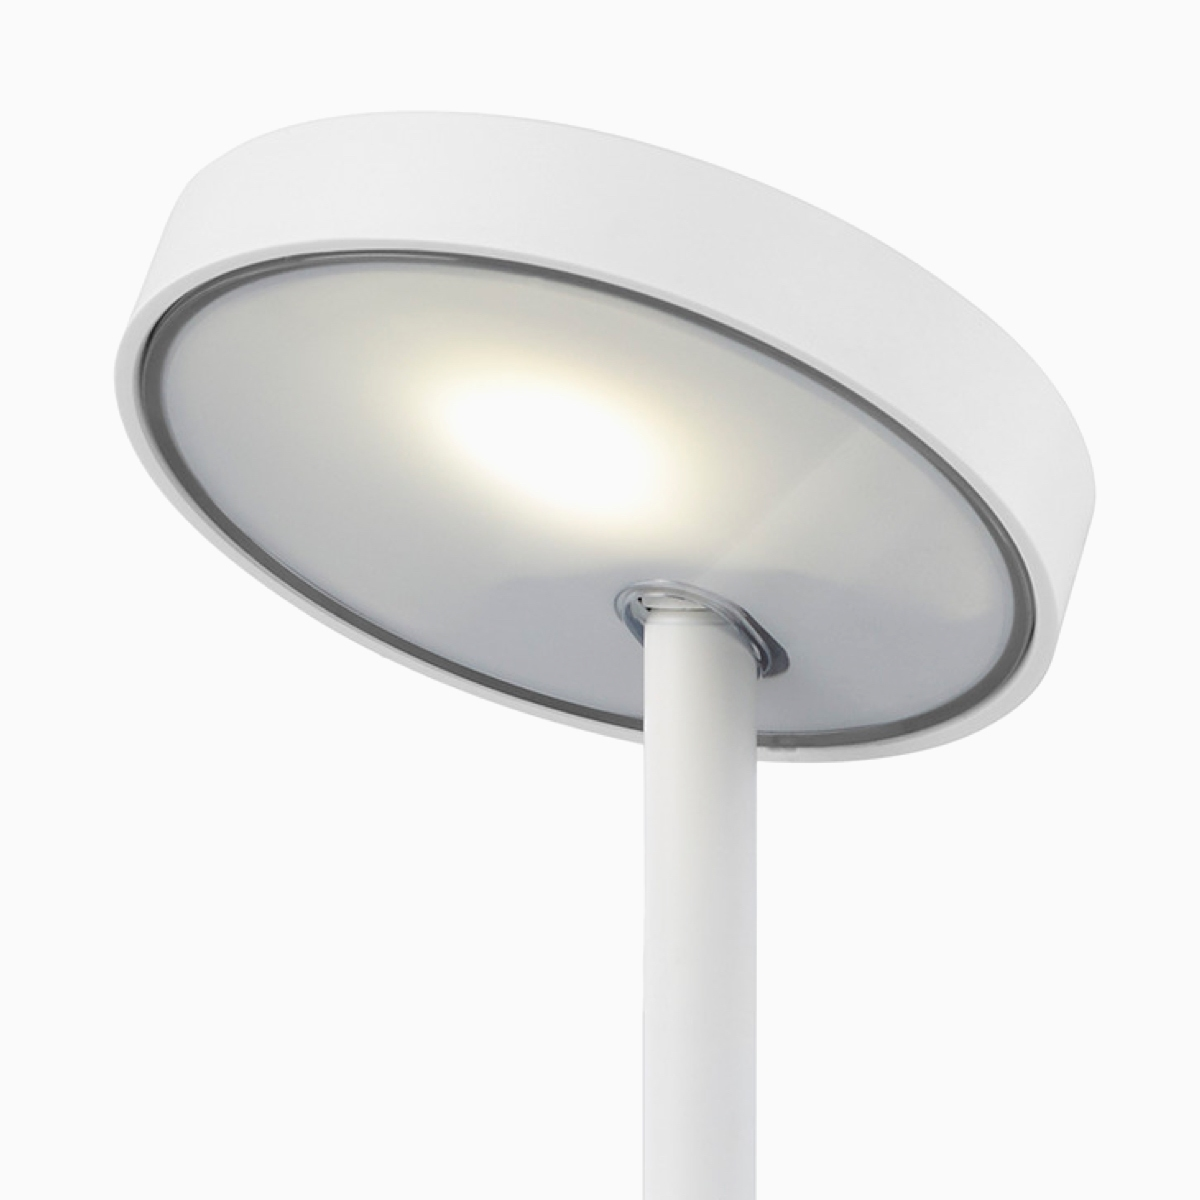 Three-quarter front view of Lolly Personal Light in white with the adjustable head tilted upward and the light on.